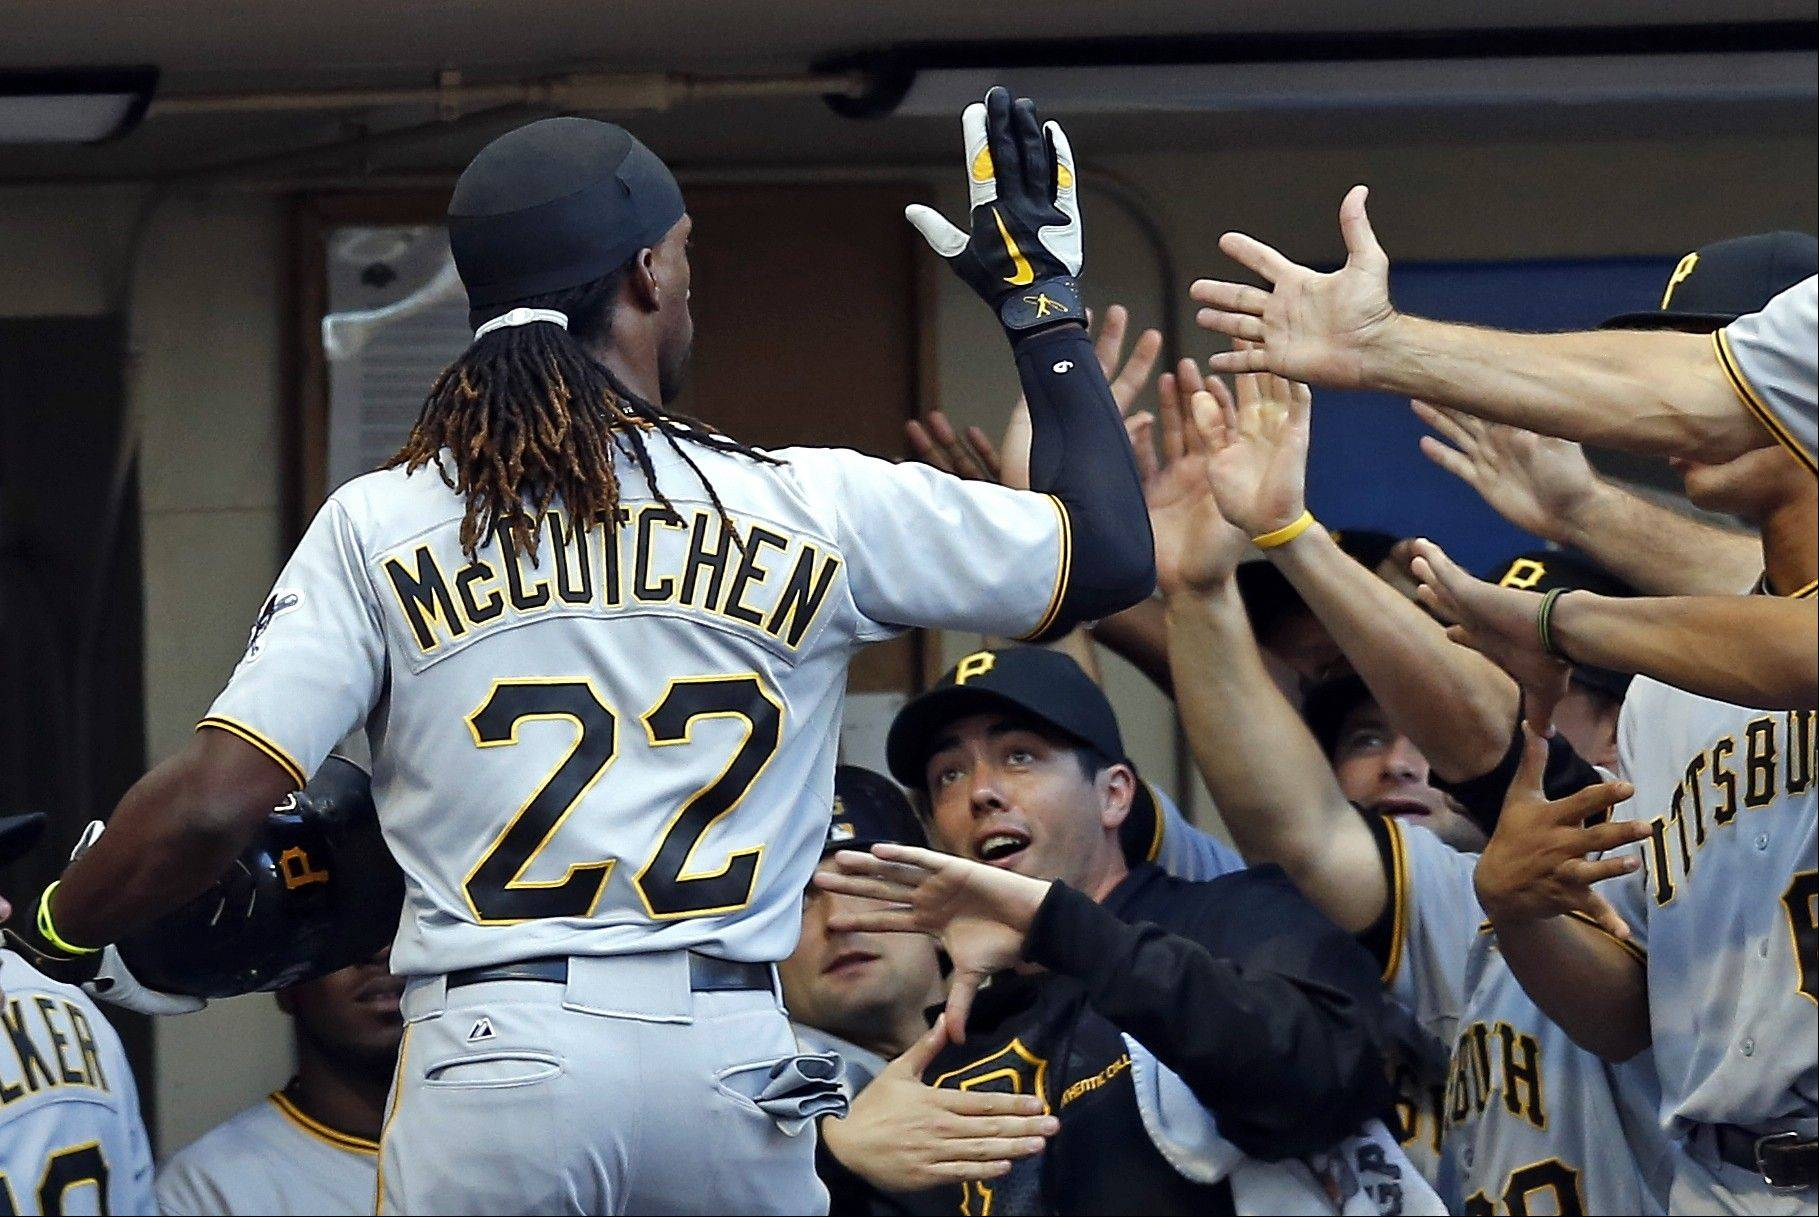 Pittsburgh Pirates outfielder Andrew McCutchen is greeted by his teammates at the dugout Saturday after he hit a two-run home run off Milwaukee Brewers pitcher Marco Estrada during the third inning in Milwaukee.